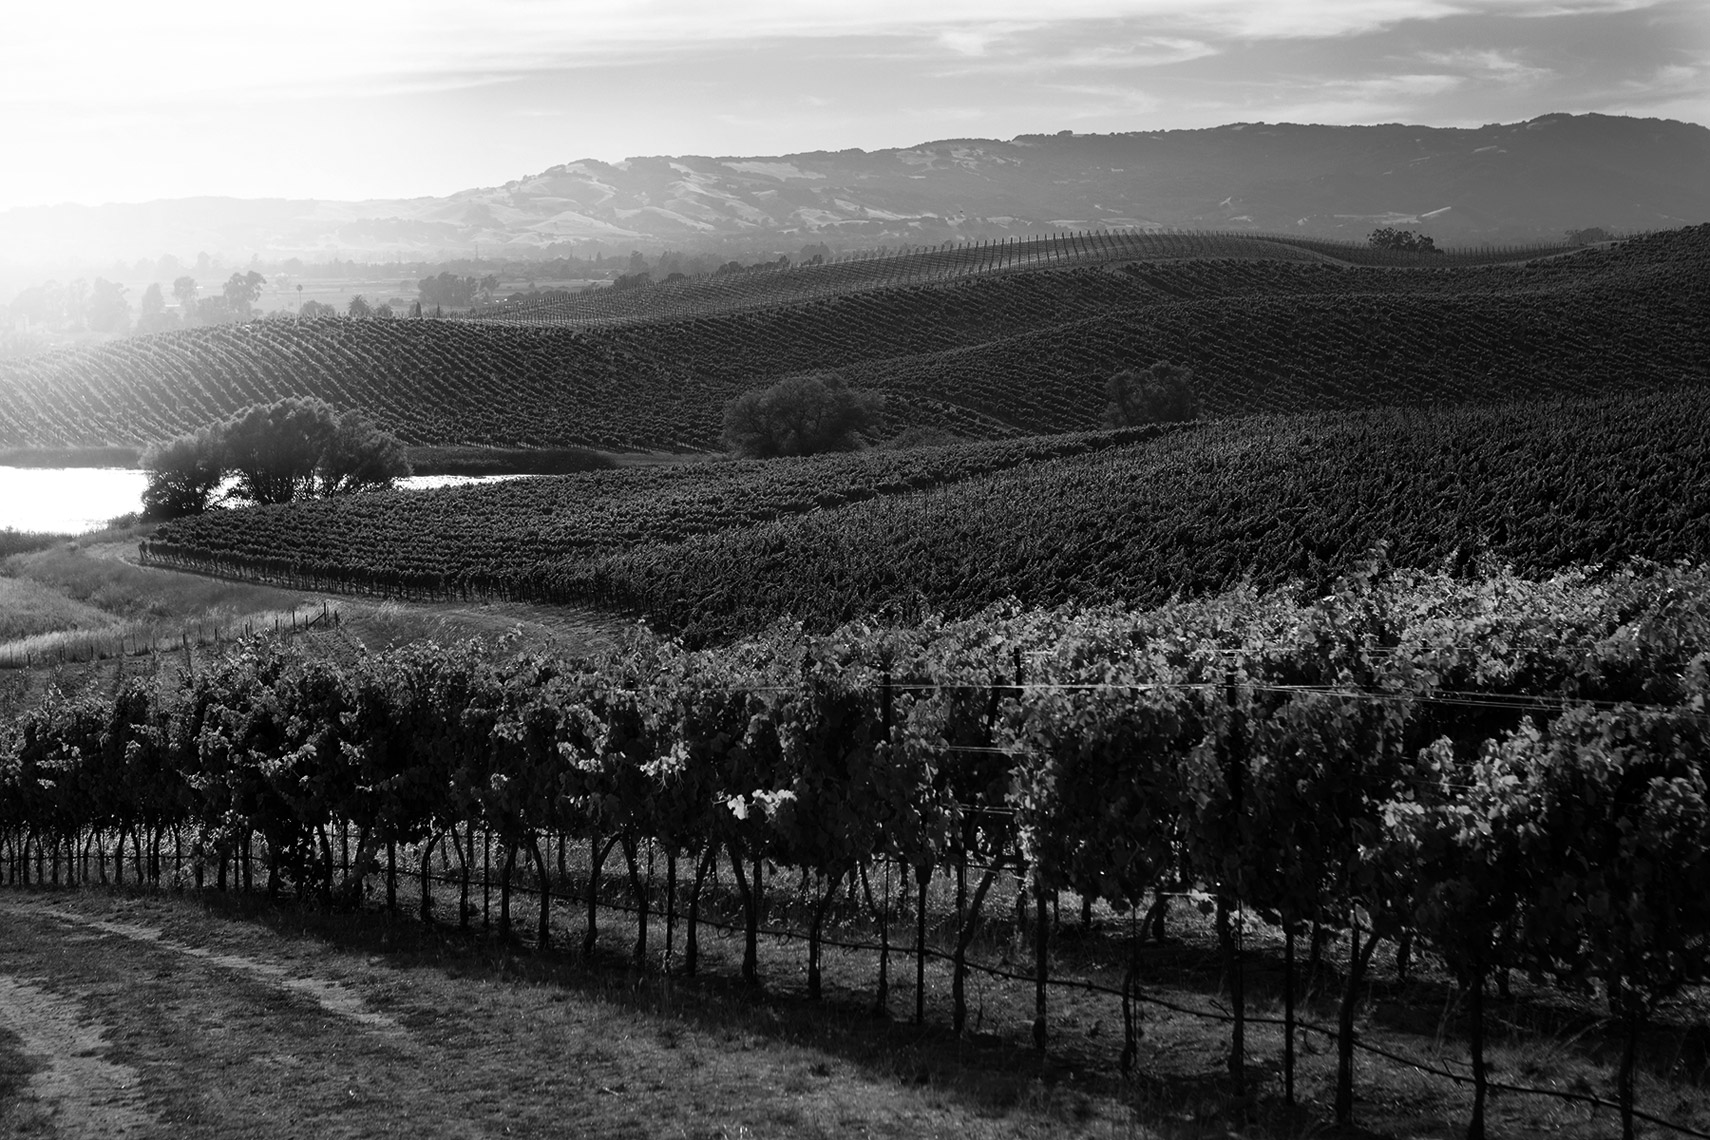 AlanCampbellPhotography, Carneros hills vineyard shot